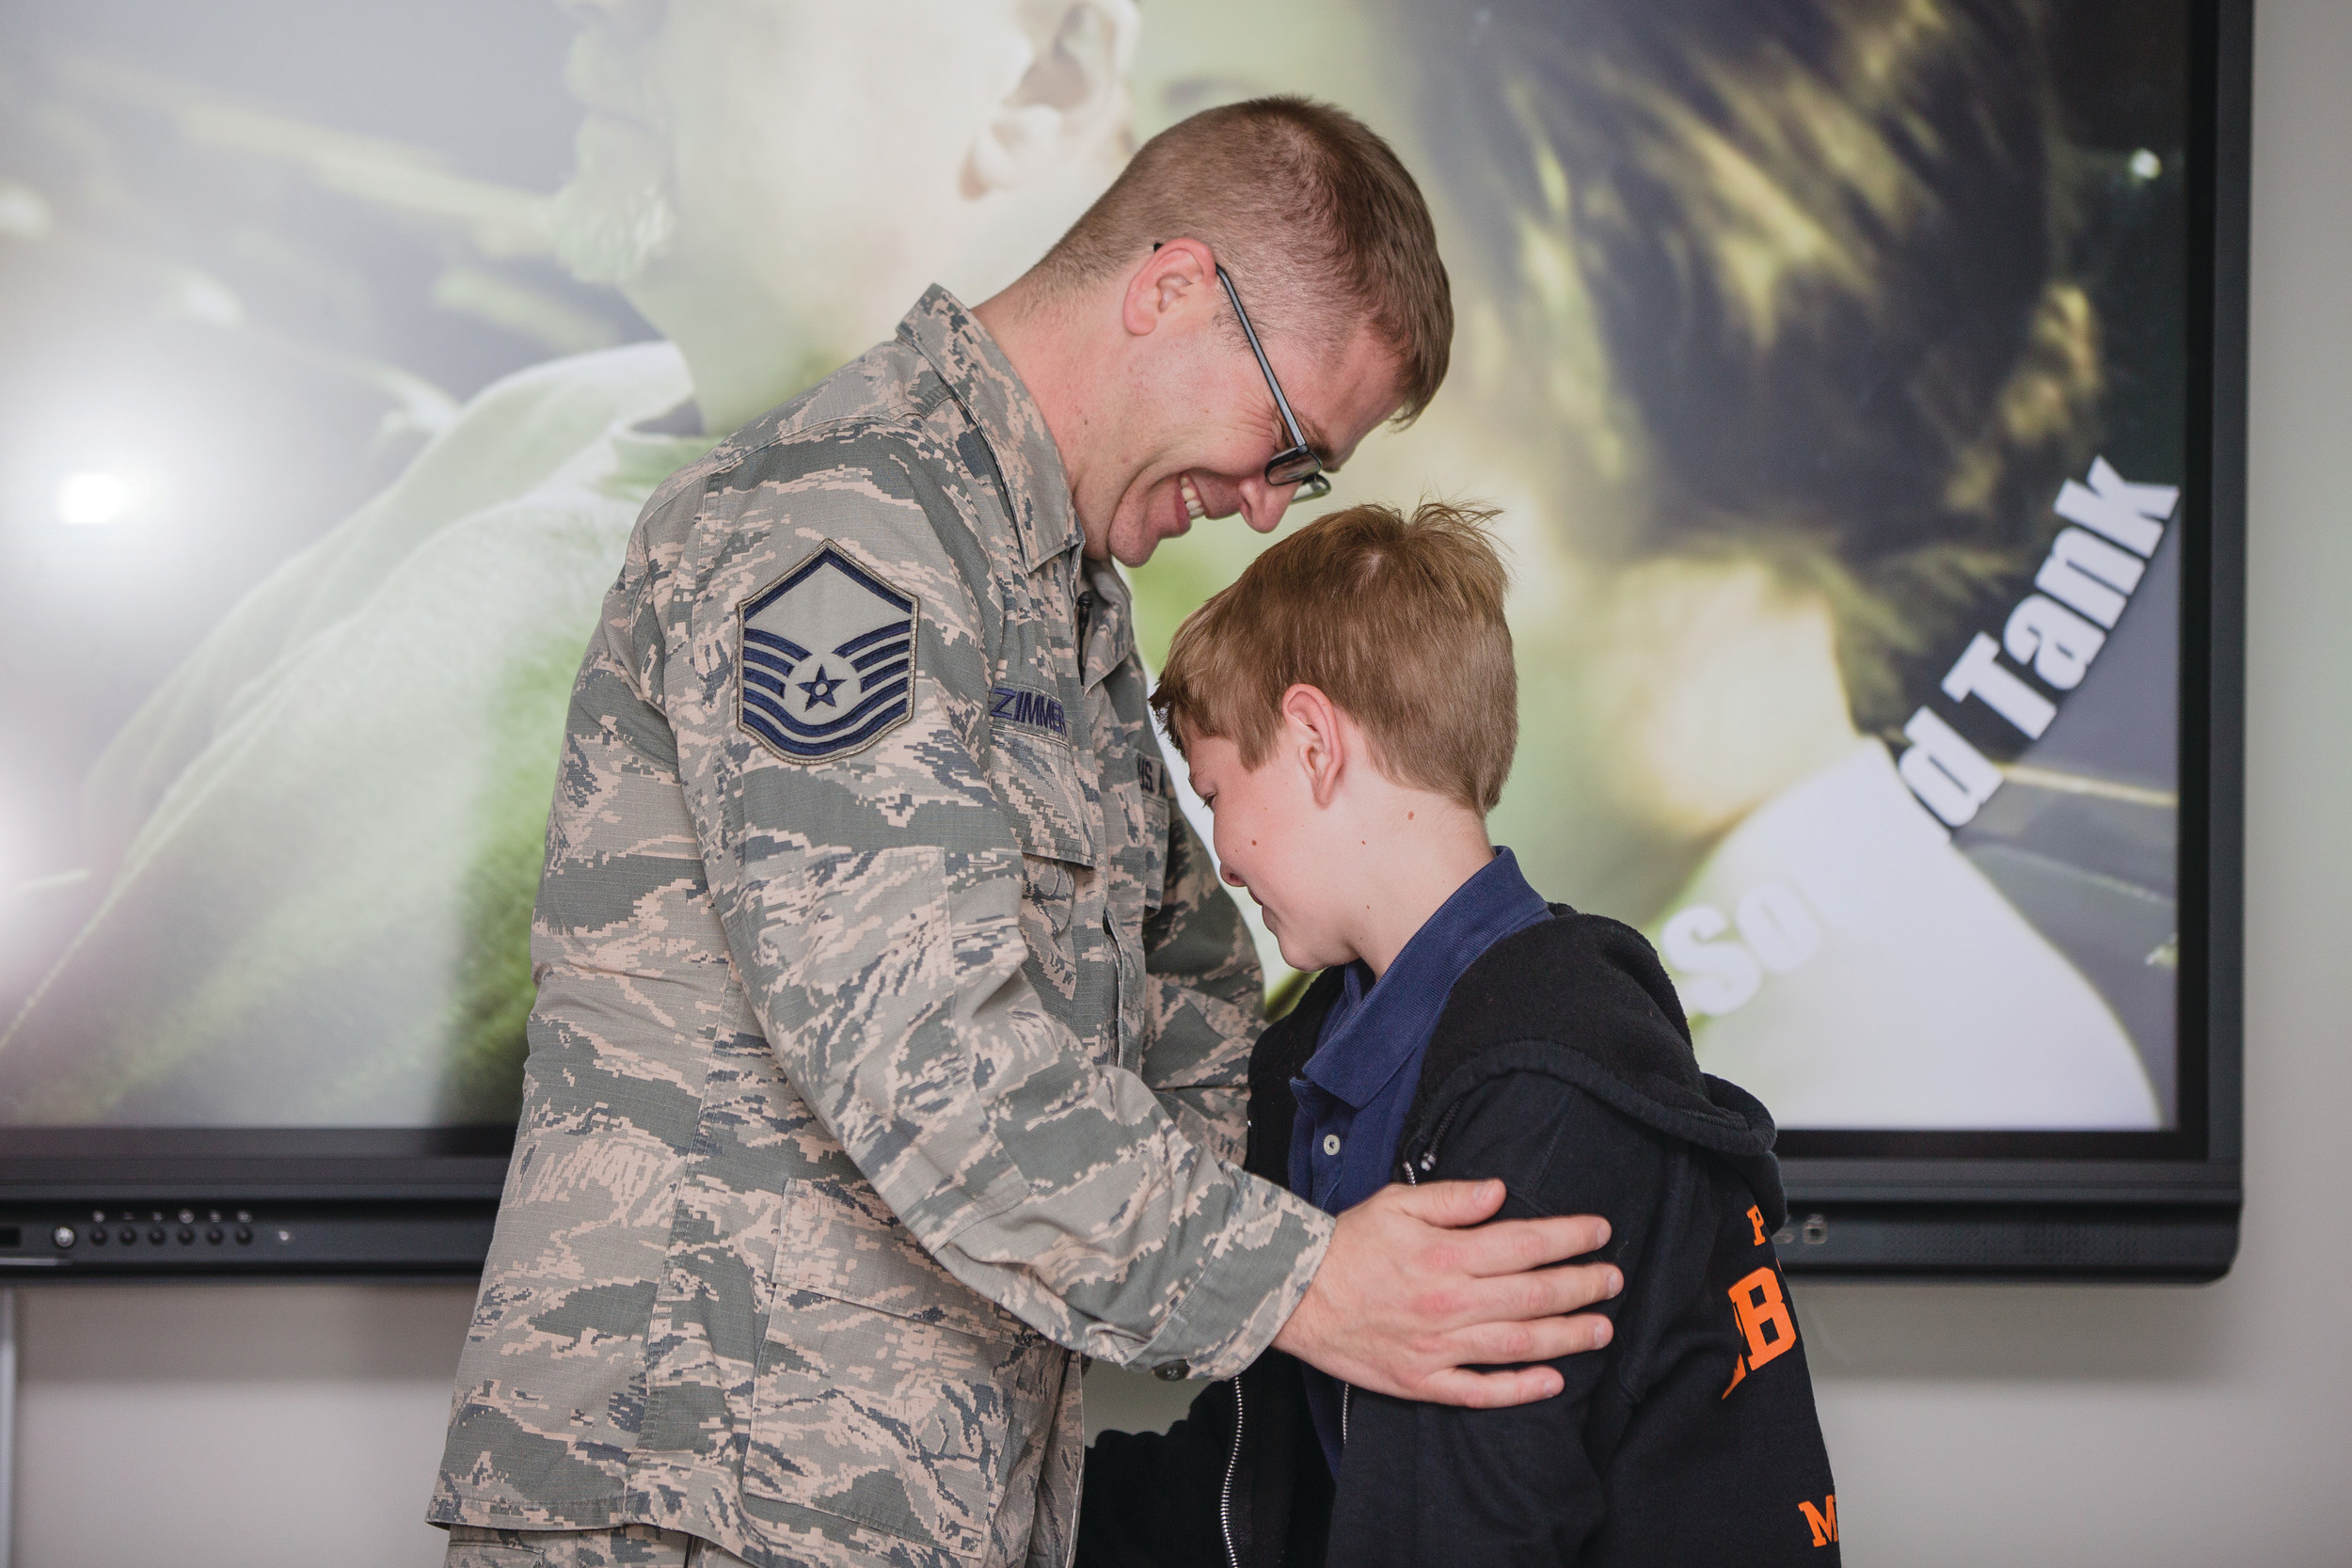 Immediately after suprising him by coming back from deployment a few weeks early, M. Sgt Steven Zimmerman hugs his youngest son, Karson, at Ebenzer Middle School Wednesday afternoon.